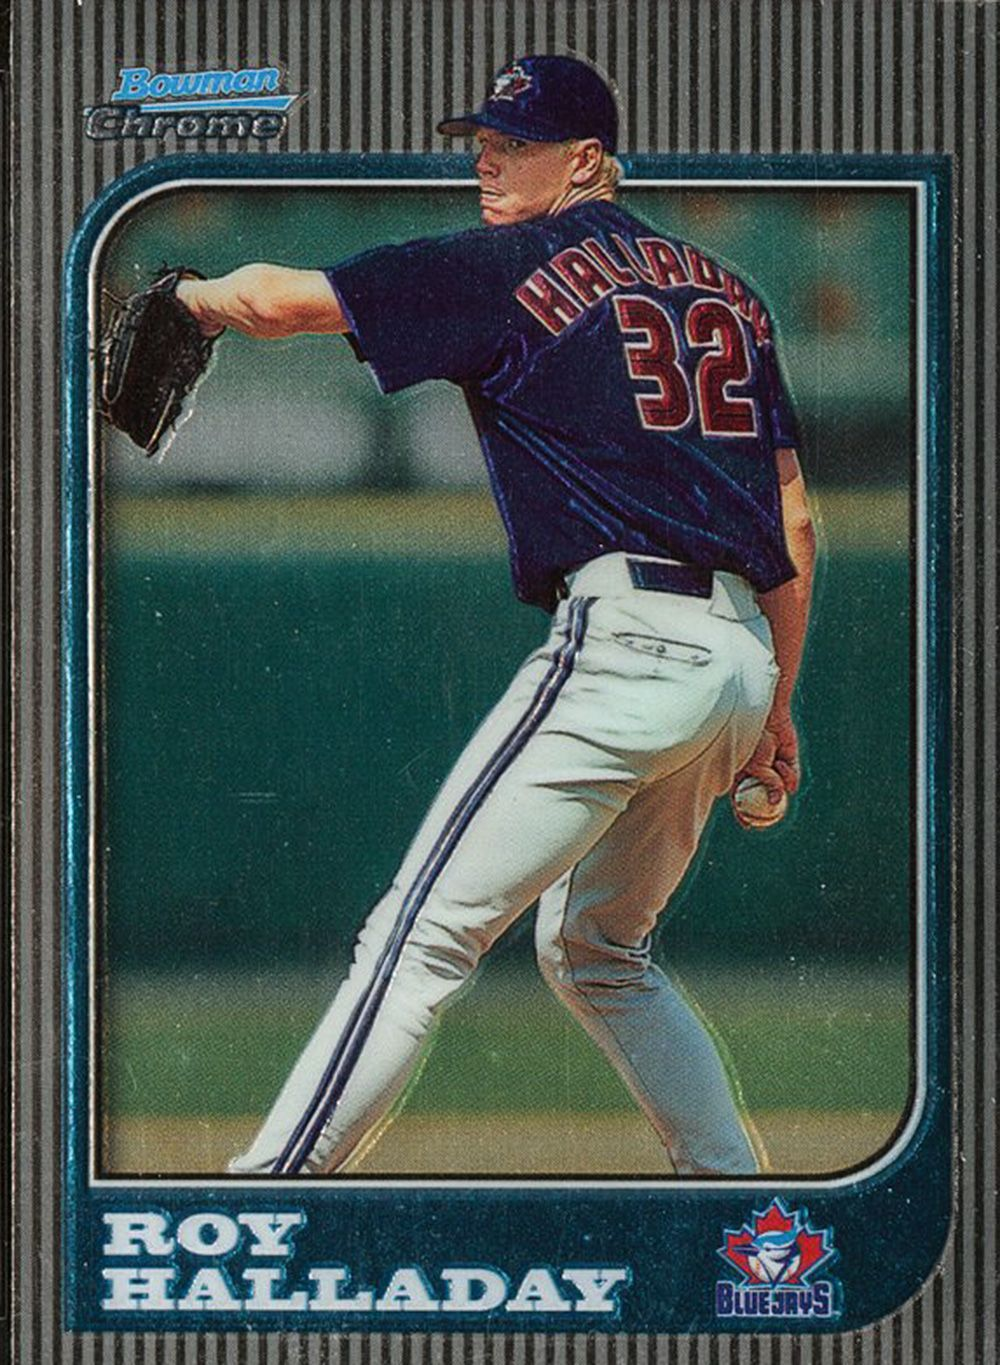 We love the '80s (and '90s) baseball cards: The top 15 sets of the